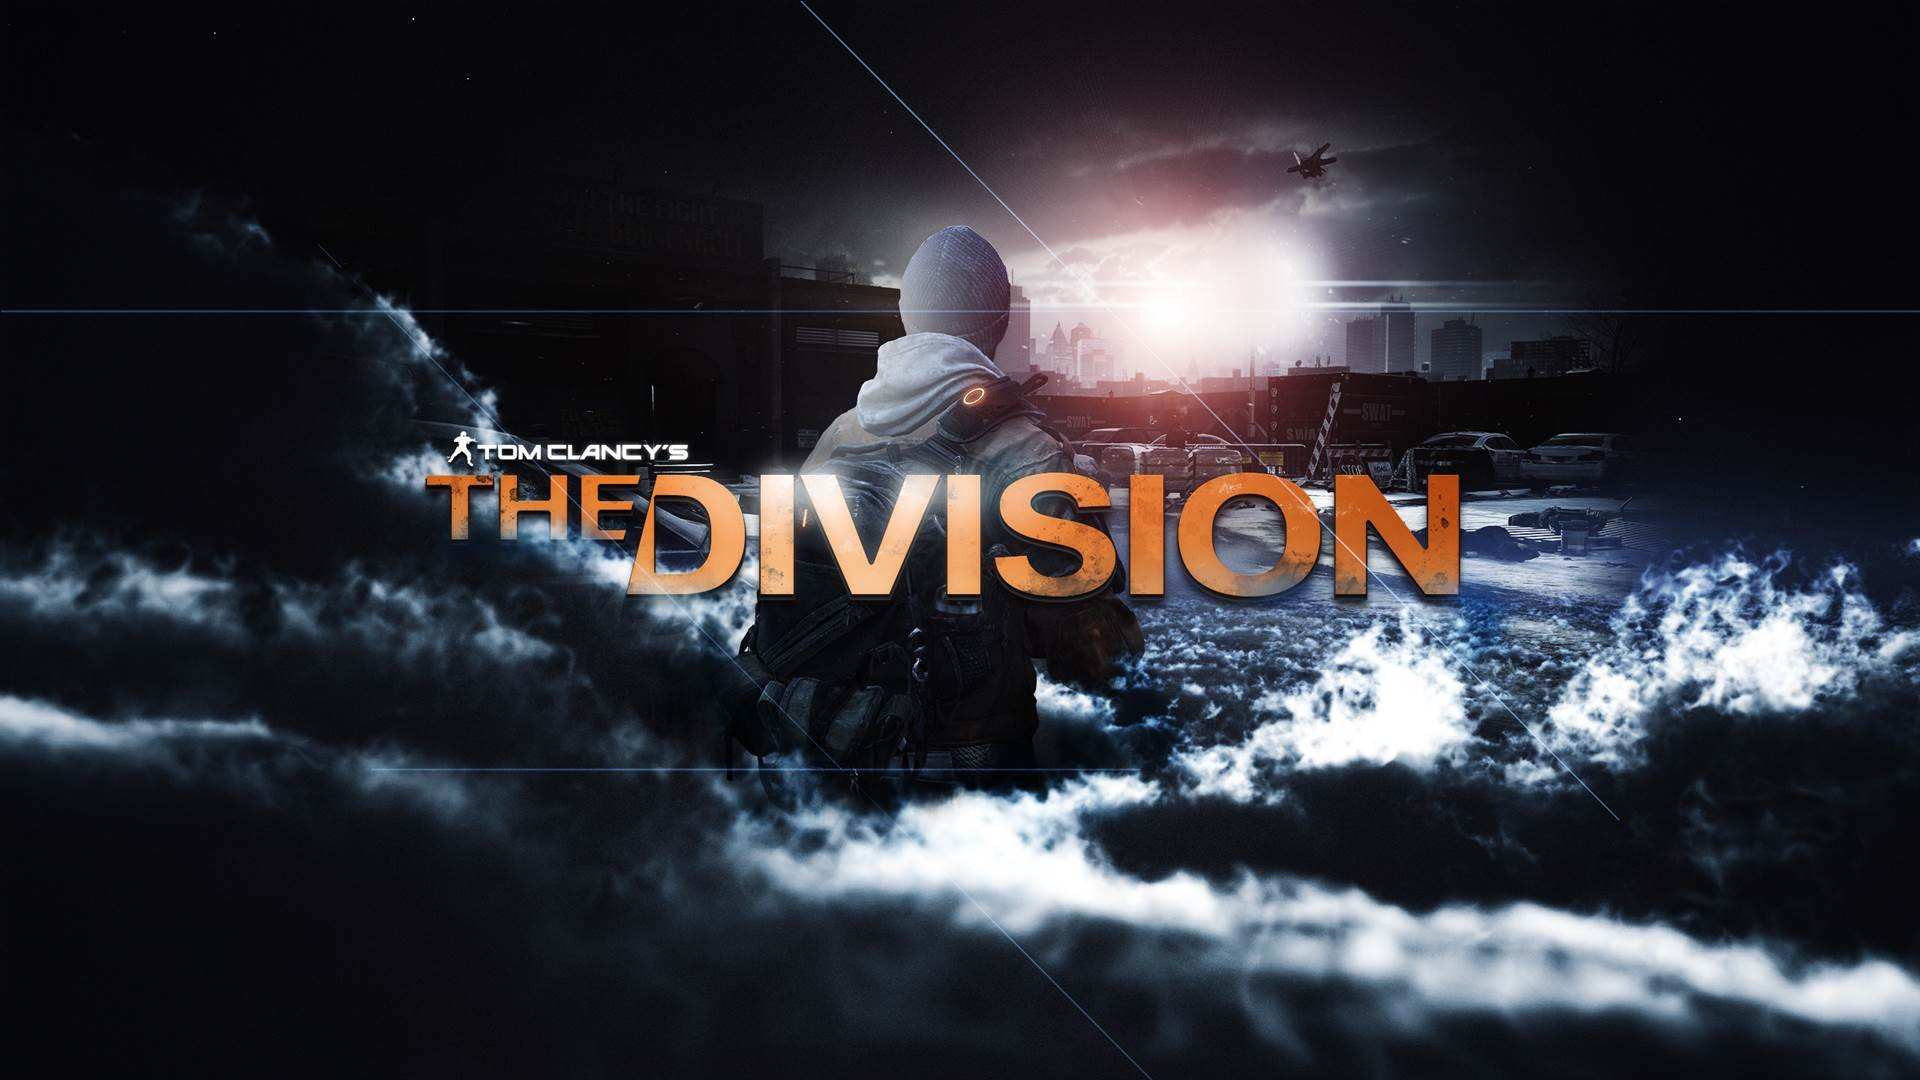 Tom Clancy's The division: hero watching the city